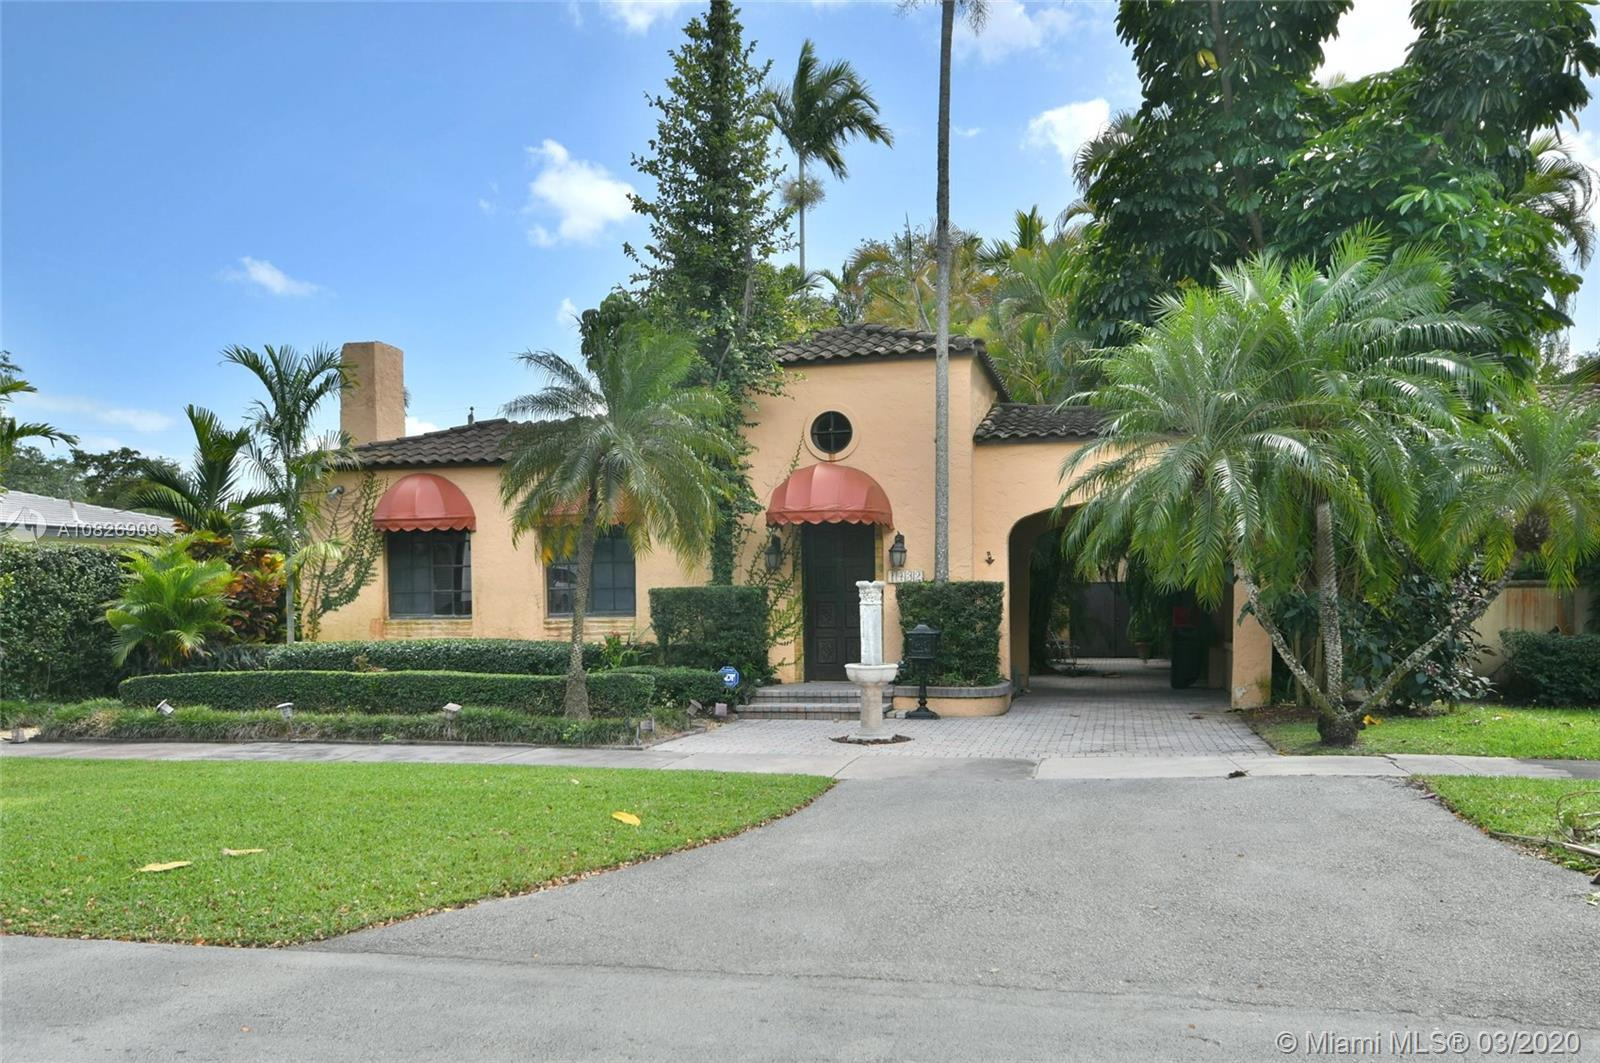 1930 Old Spanish style house full of old-world charm, elegance and ambiance. Located on a tranquil C